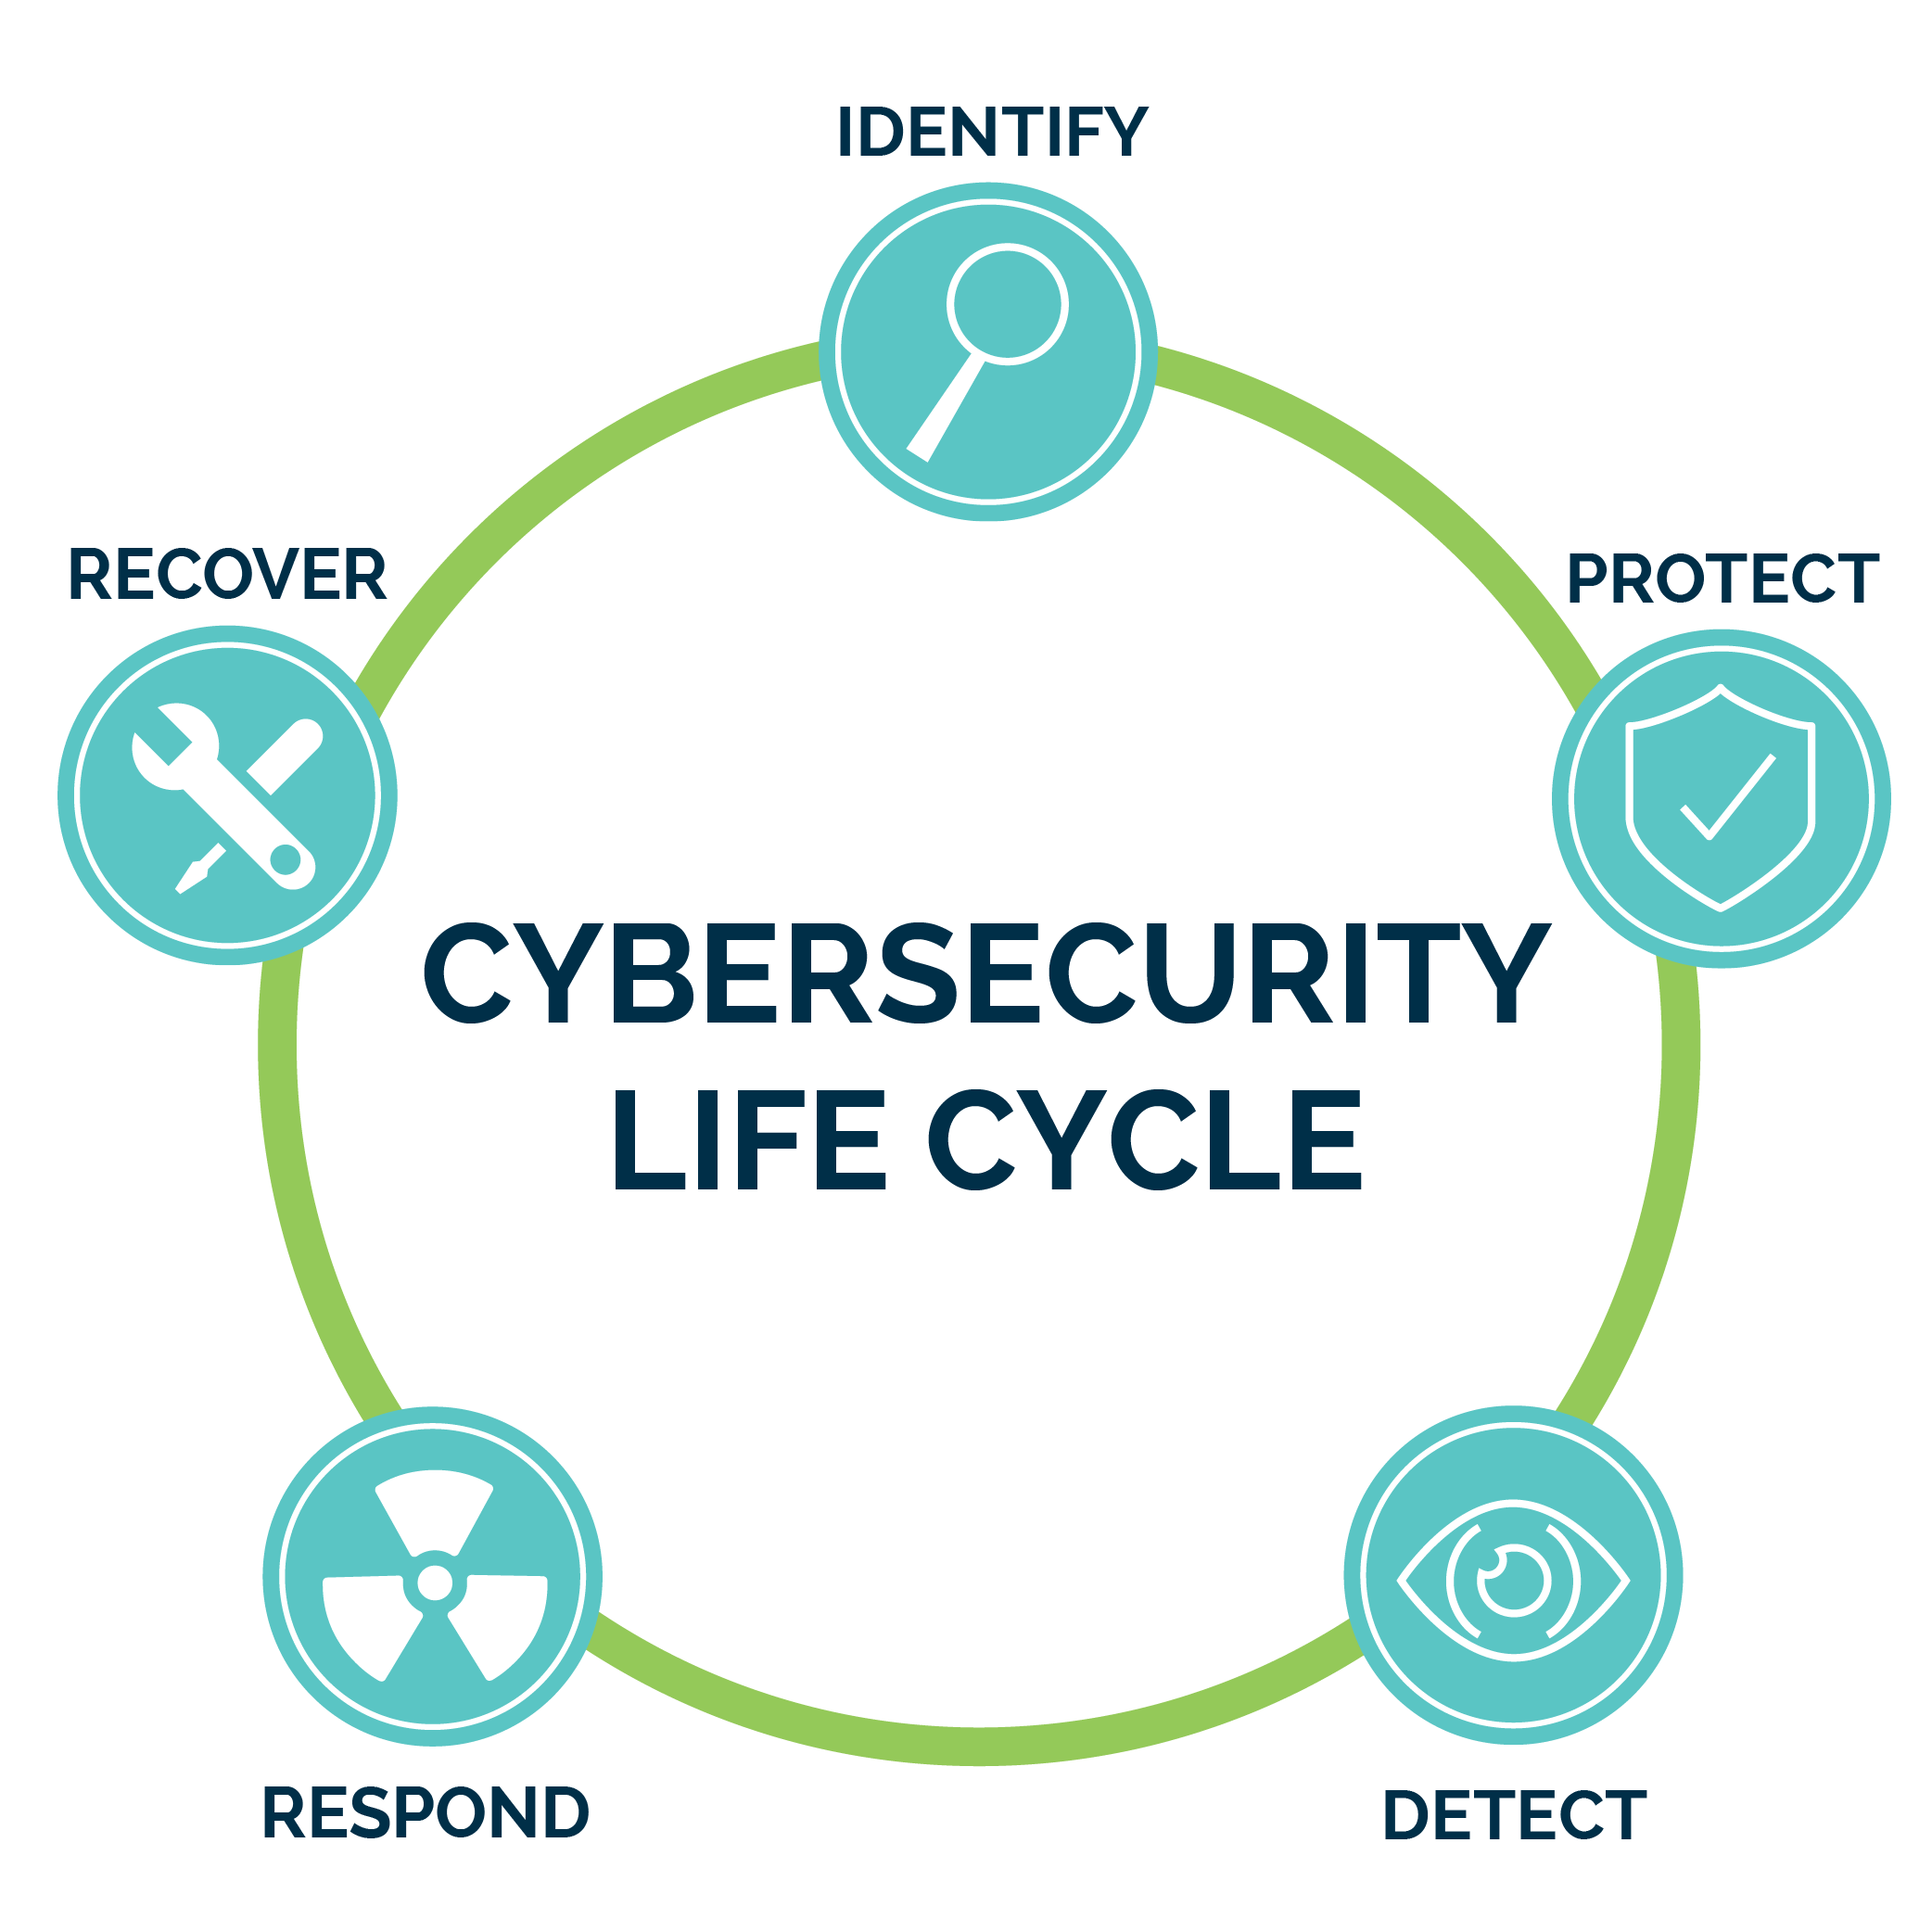 cybersecurity life cycle